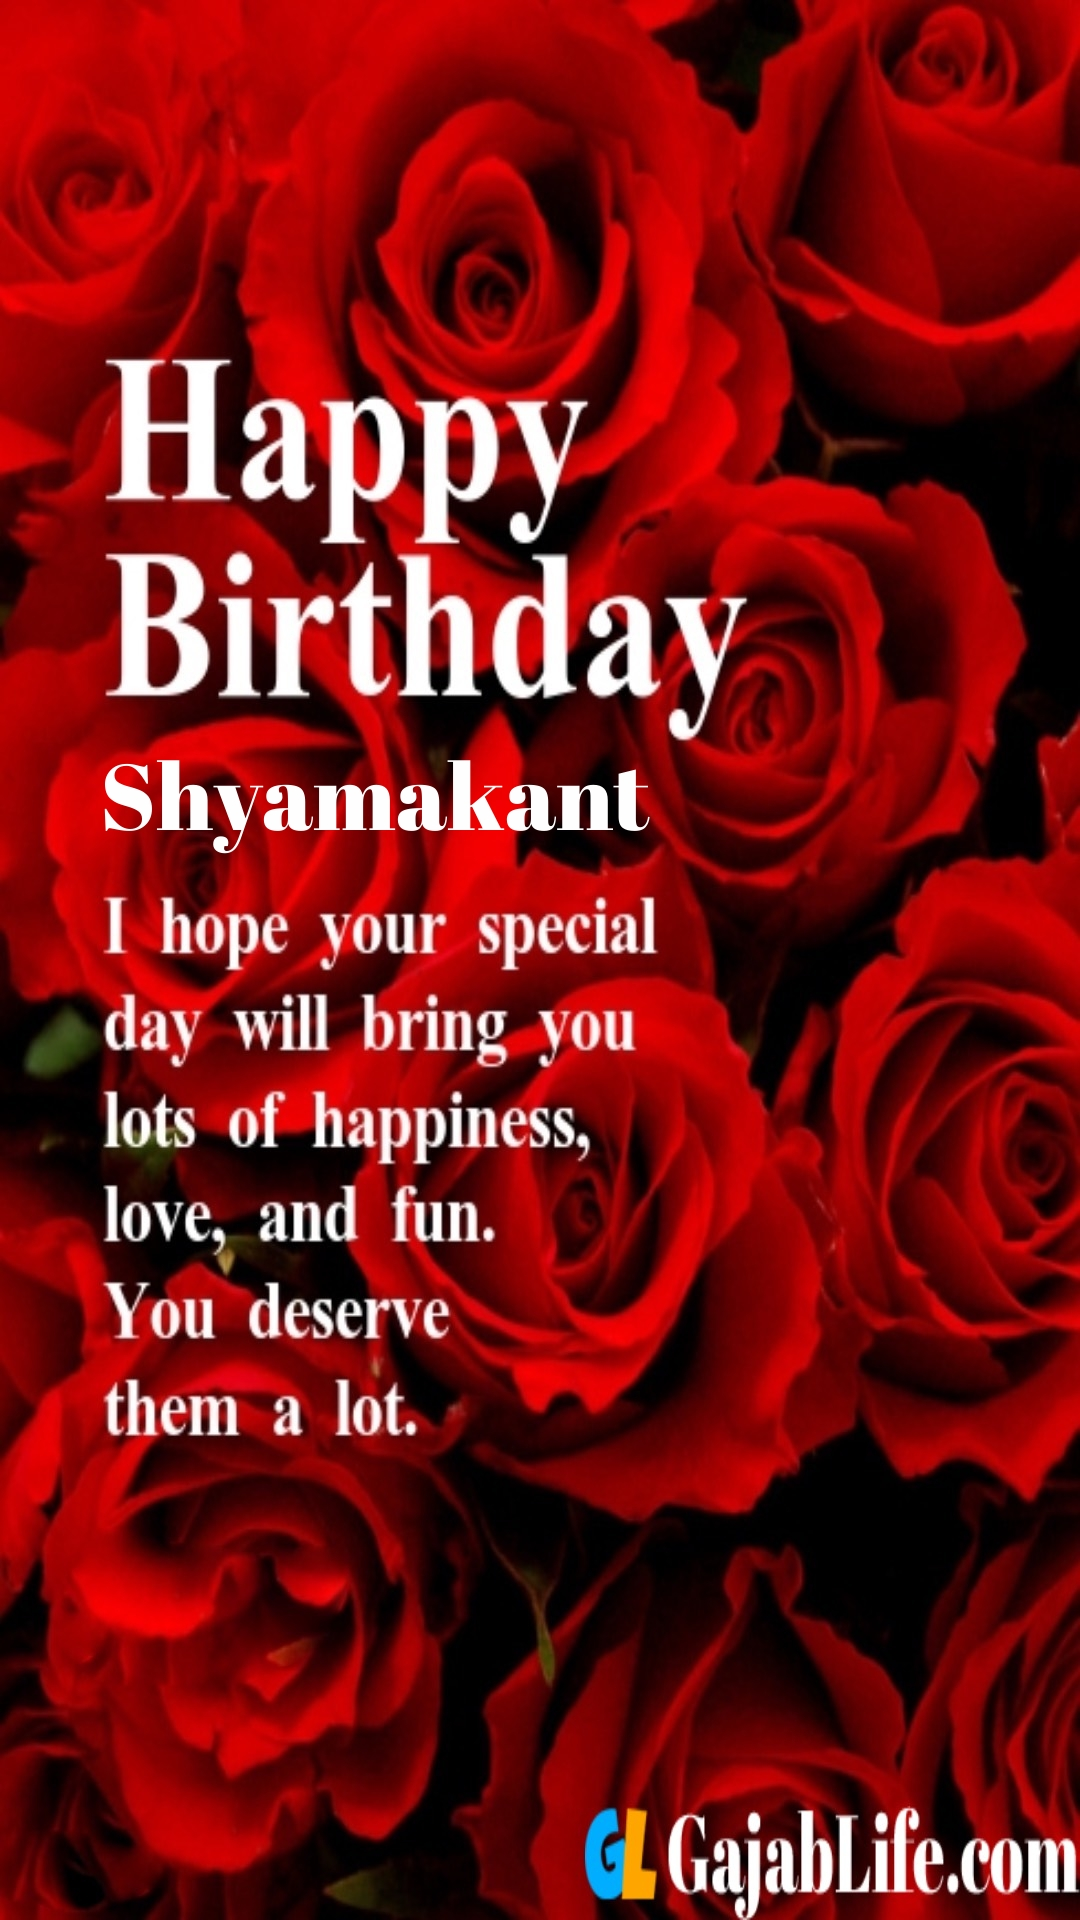 Shyamakant birthday greeting card with rose & love